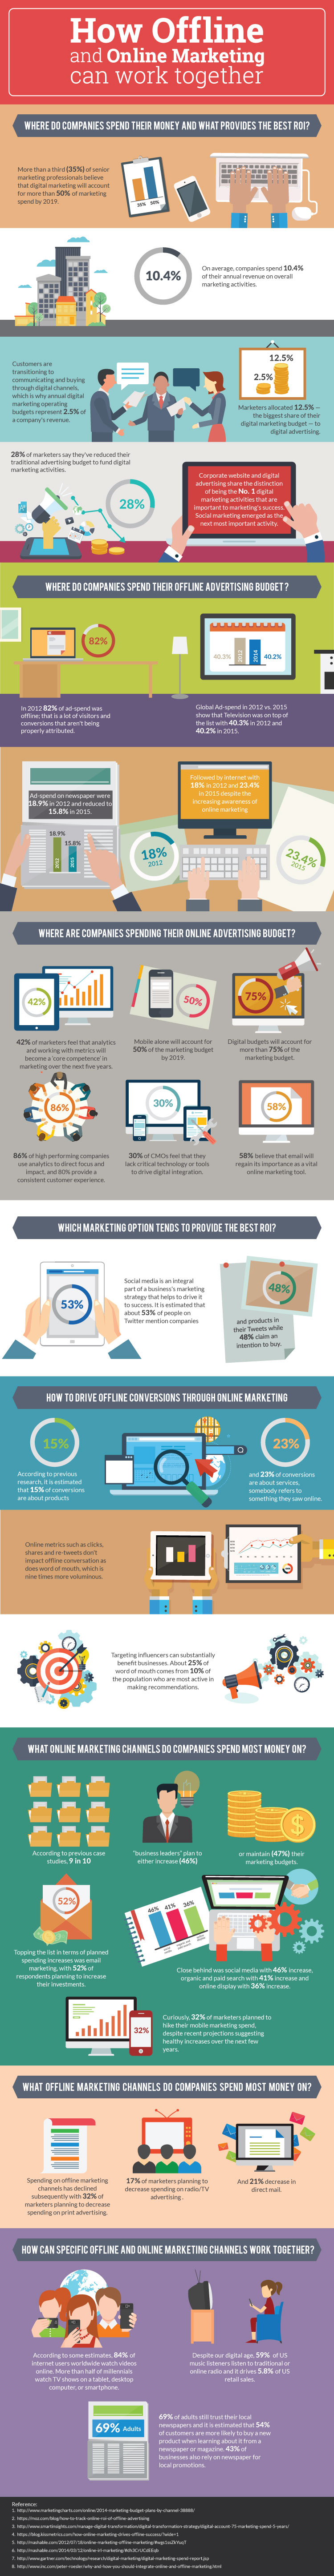 offline-and-online-marketing-infographic